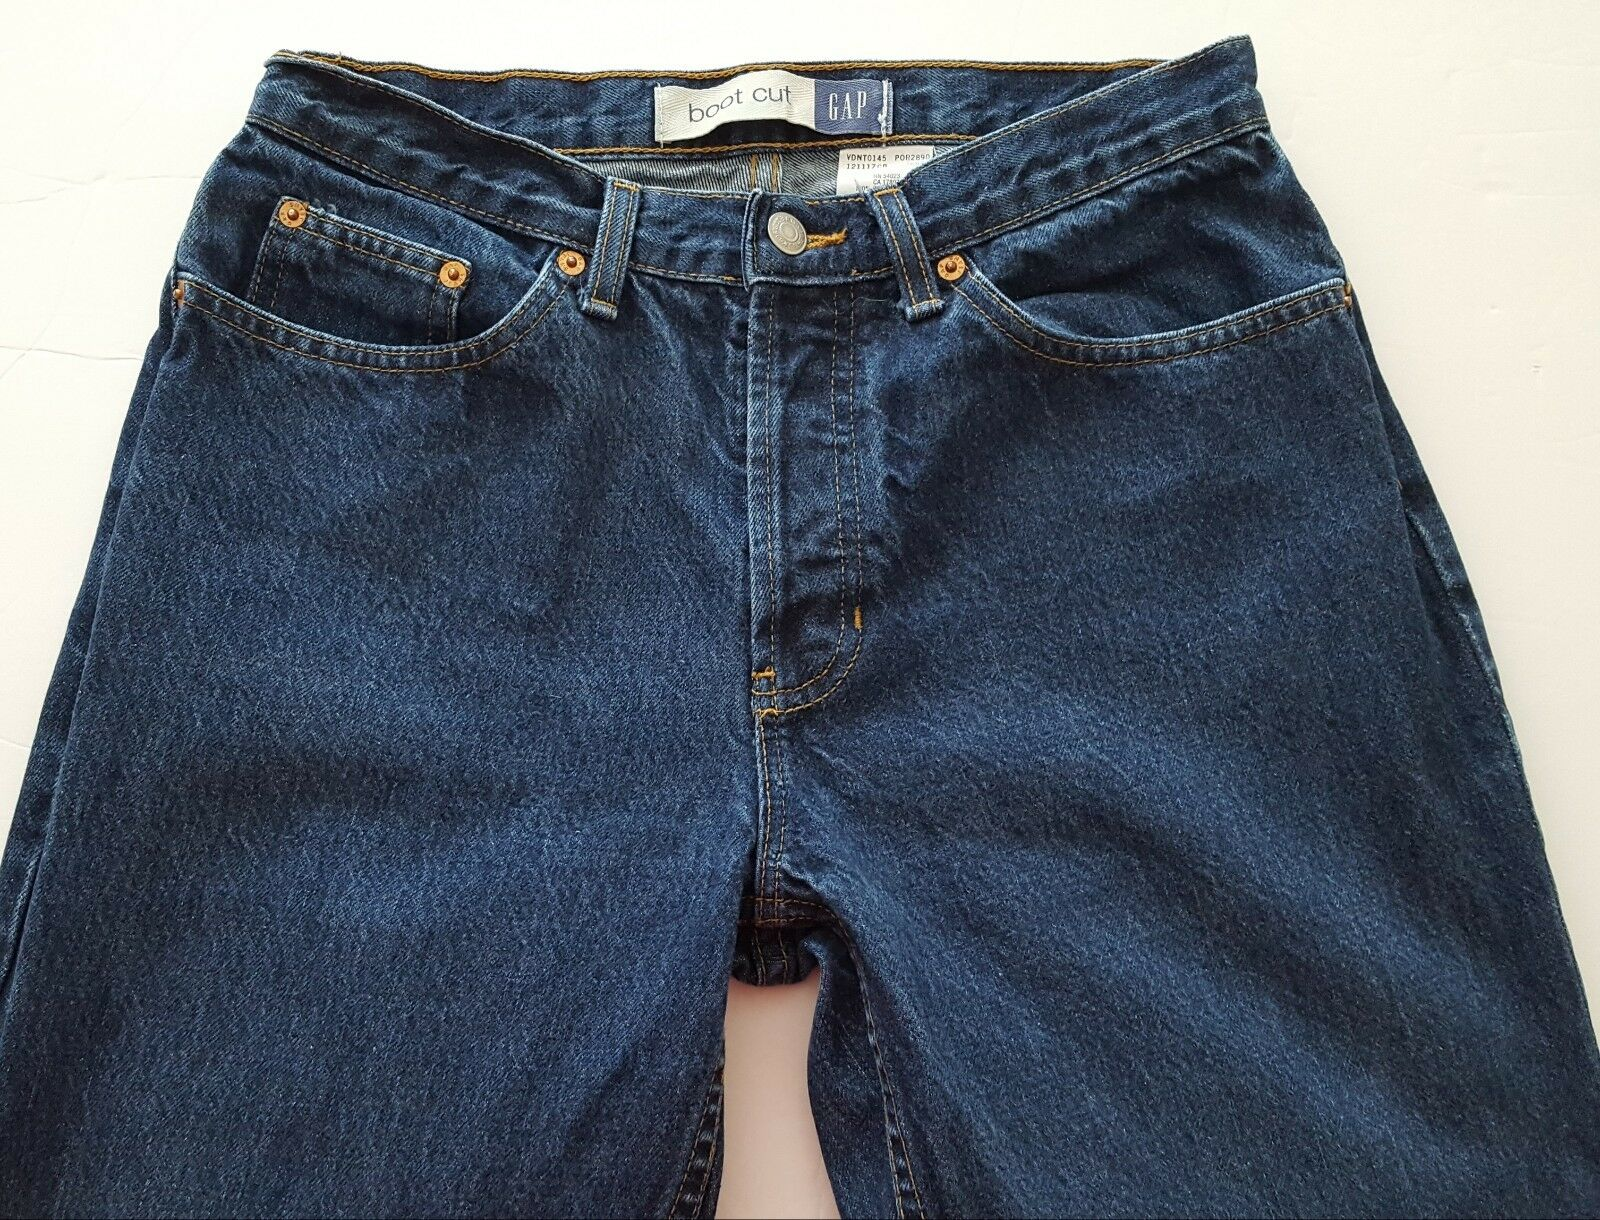 Vintage Gap Women's Boot Cut Jeans Size 8 Long bluee Riveted Denim Made in USA